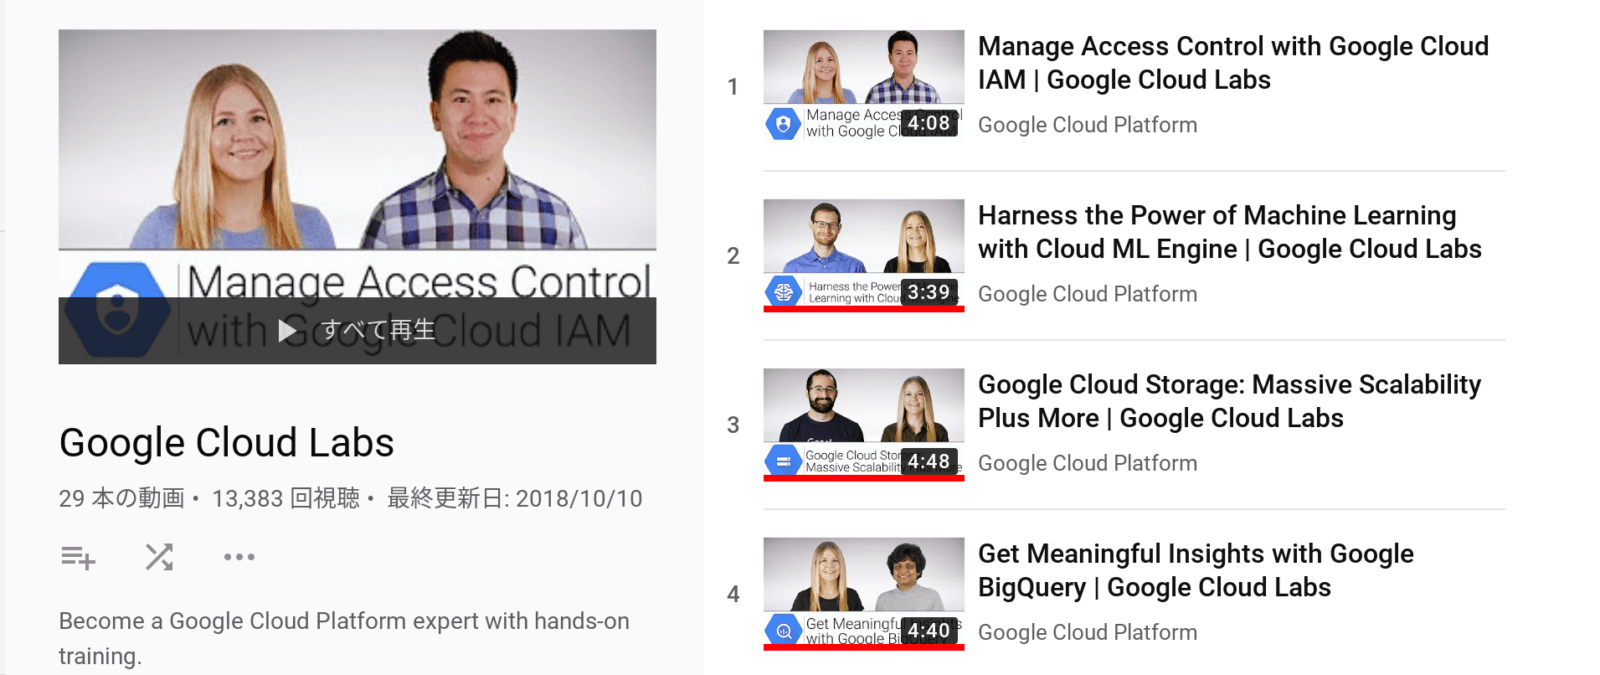 YouTube Channel:Google Cloud Labs